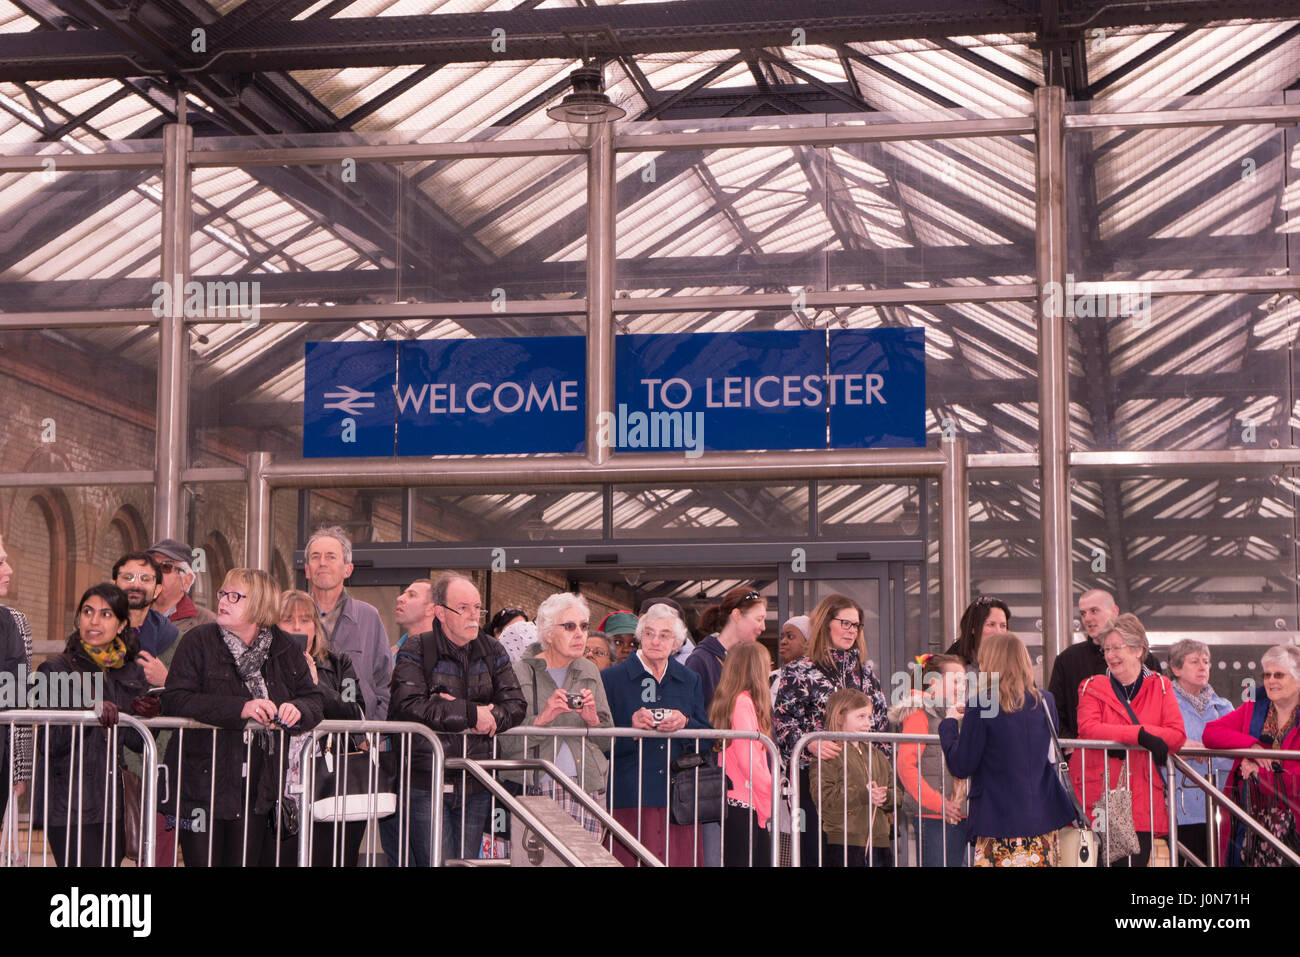 Leicester, UK. Thursday 13th April 2017.crowds wait to welcome Her Majesty Queen Elizabeth II and The Duke or Edinburgh Stock Photo